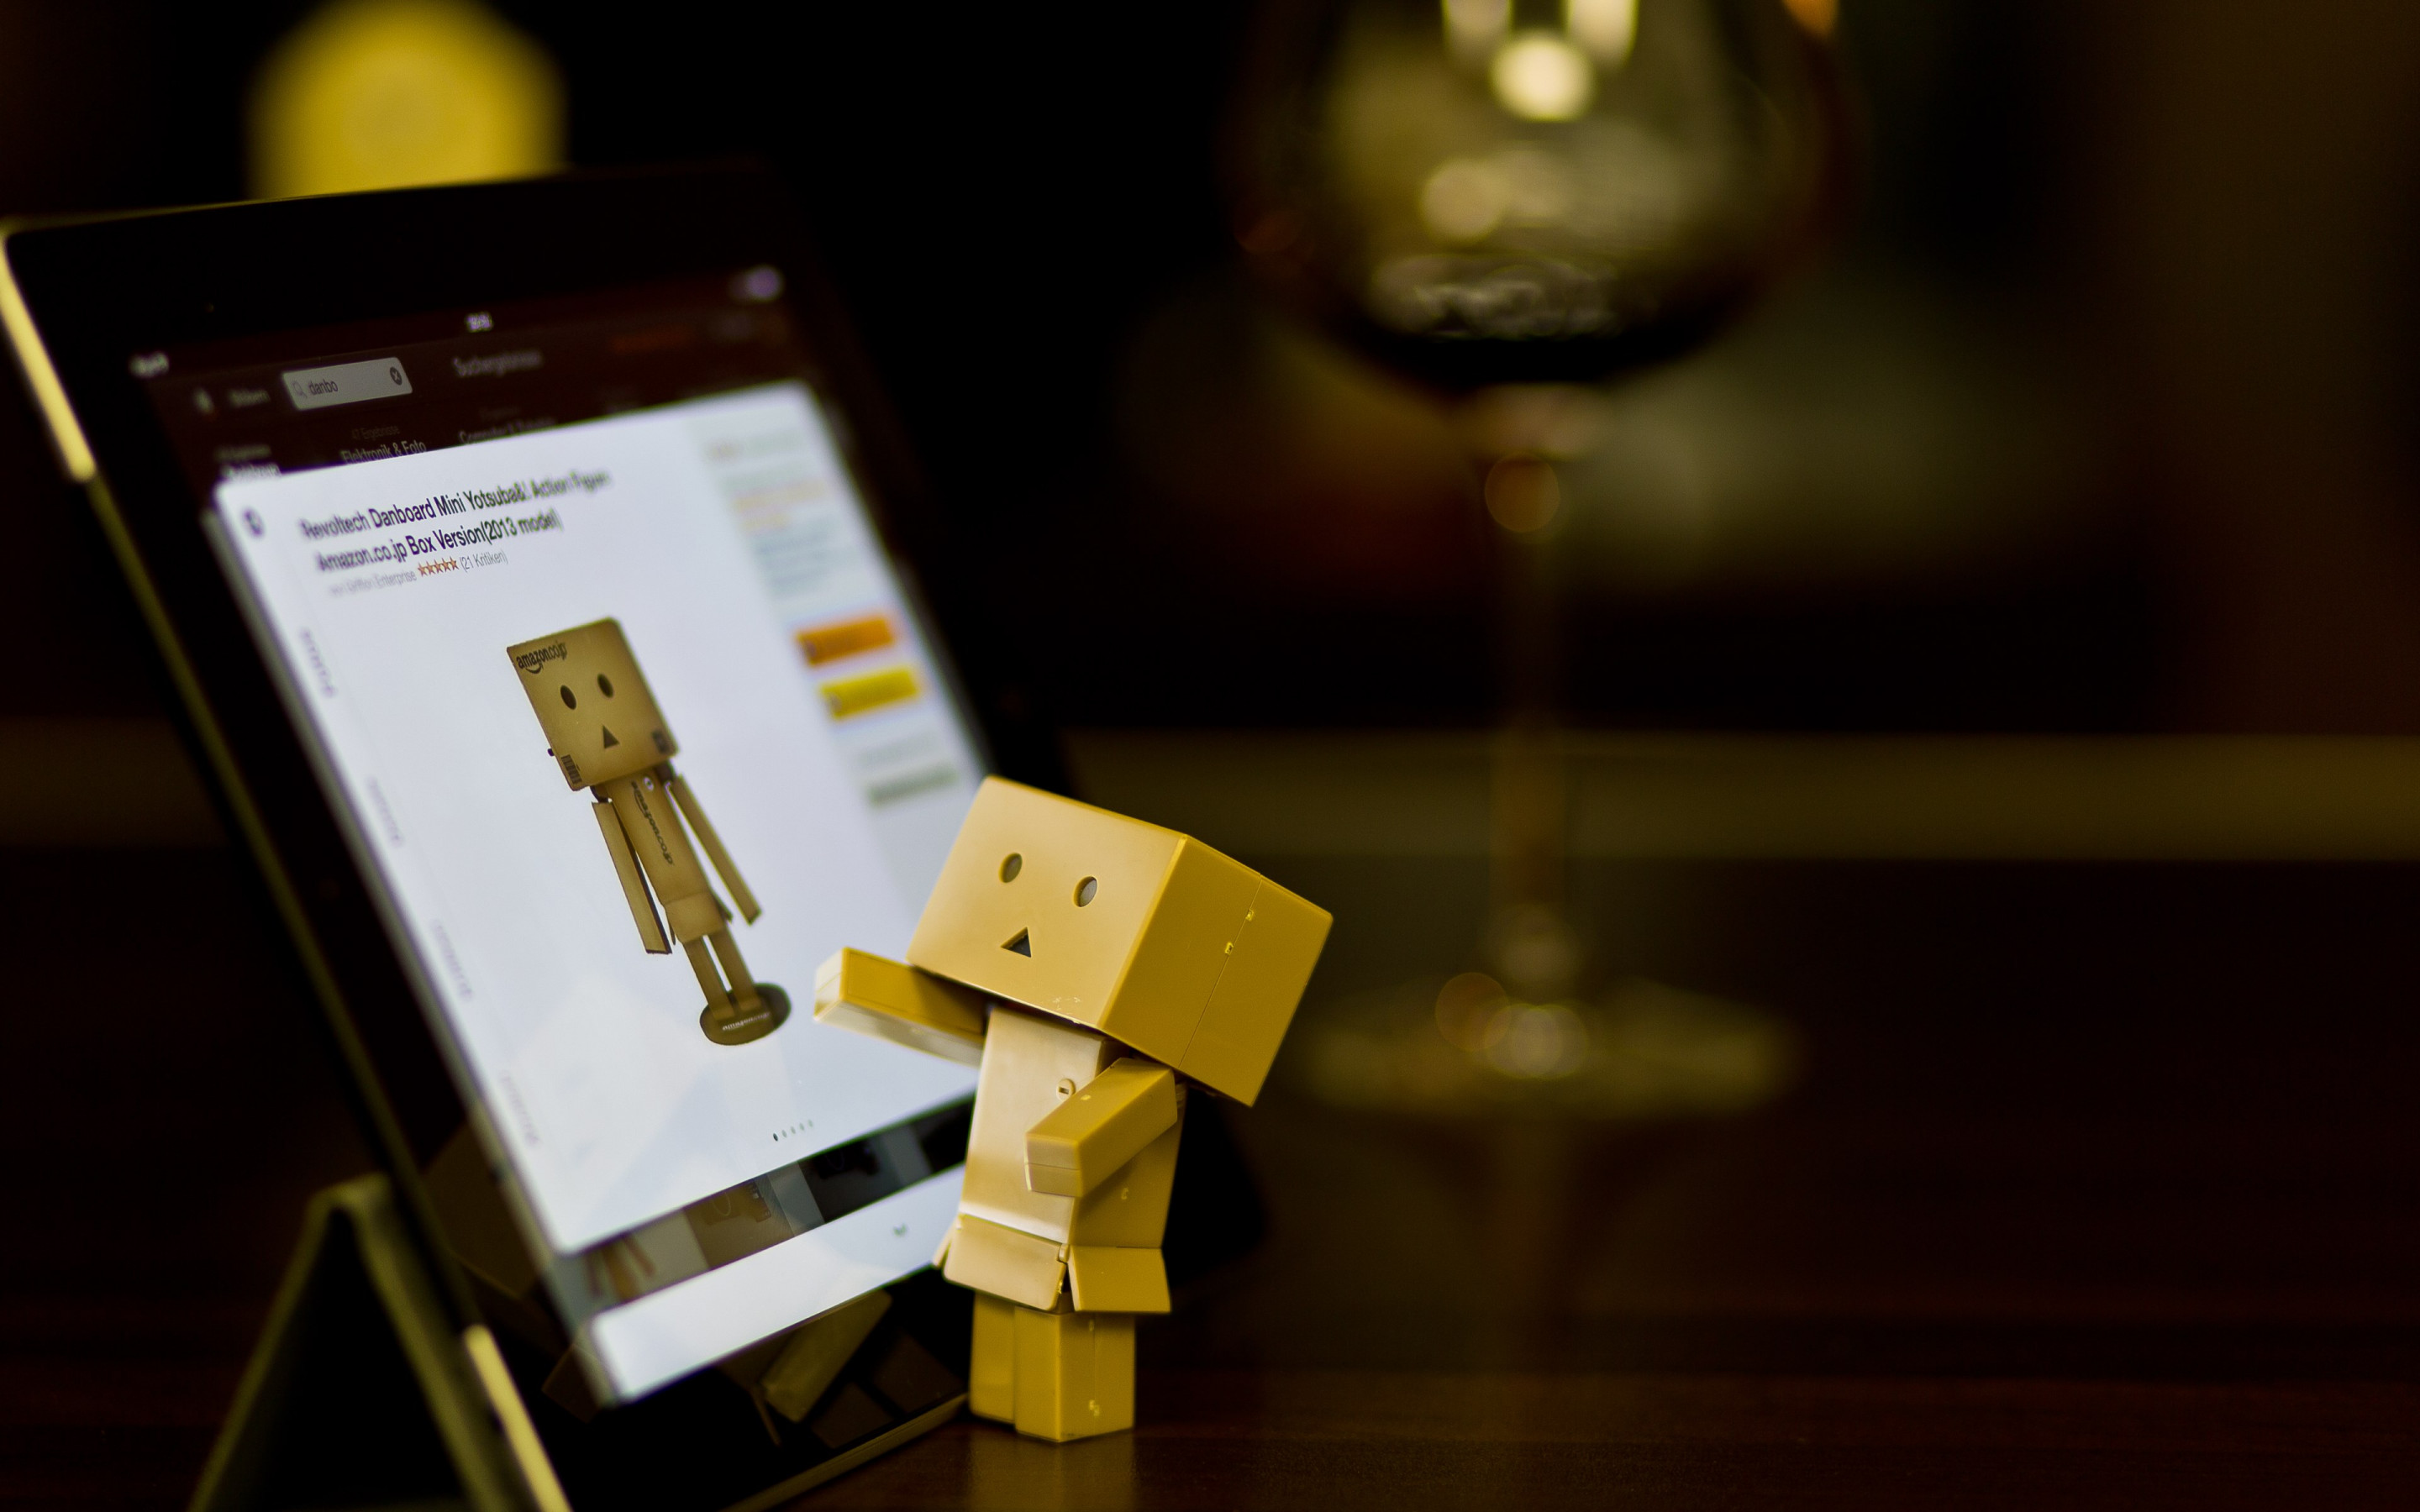 Danbo with tablet wallpaper 2880x1800